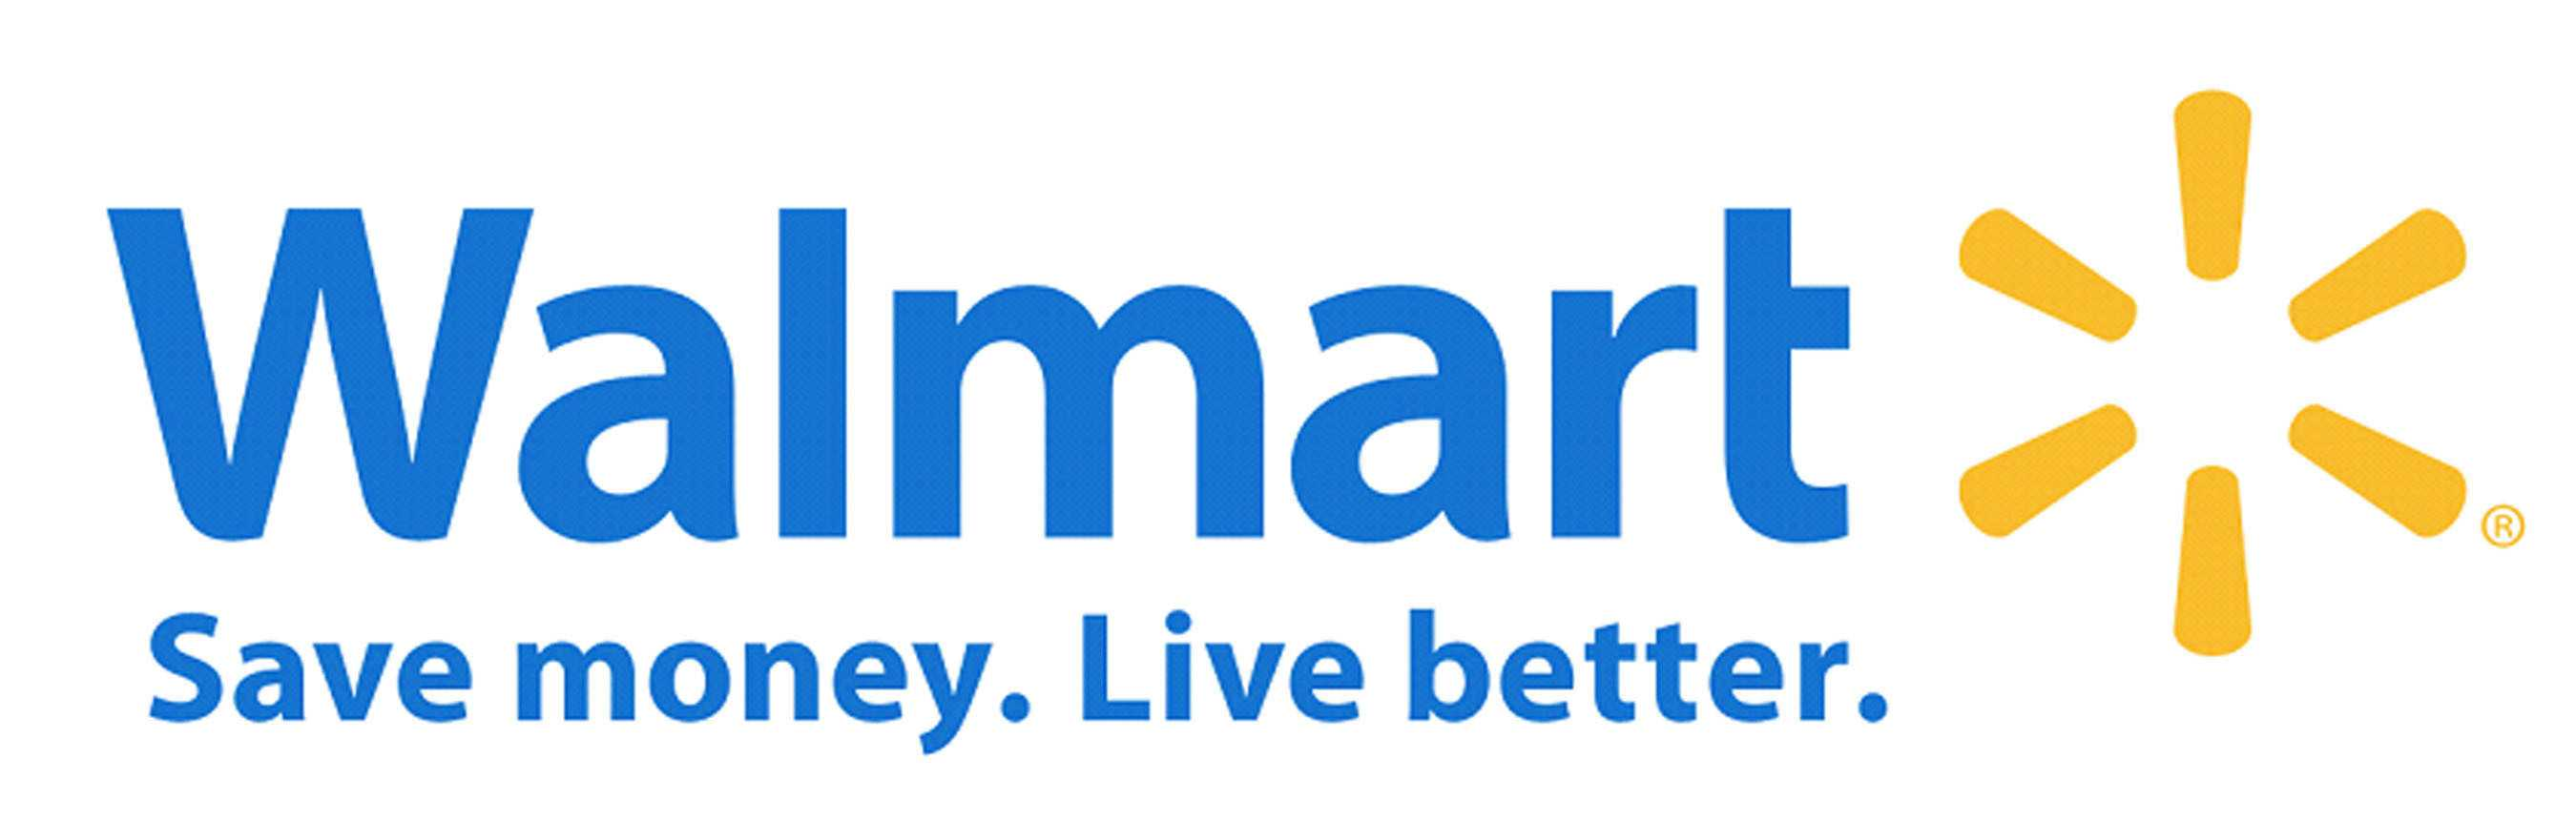 wallmart near me, wallmart locations, wallmart pharmacy near me